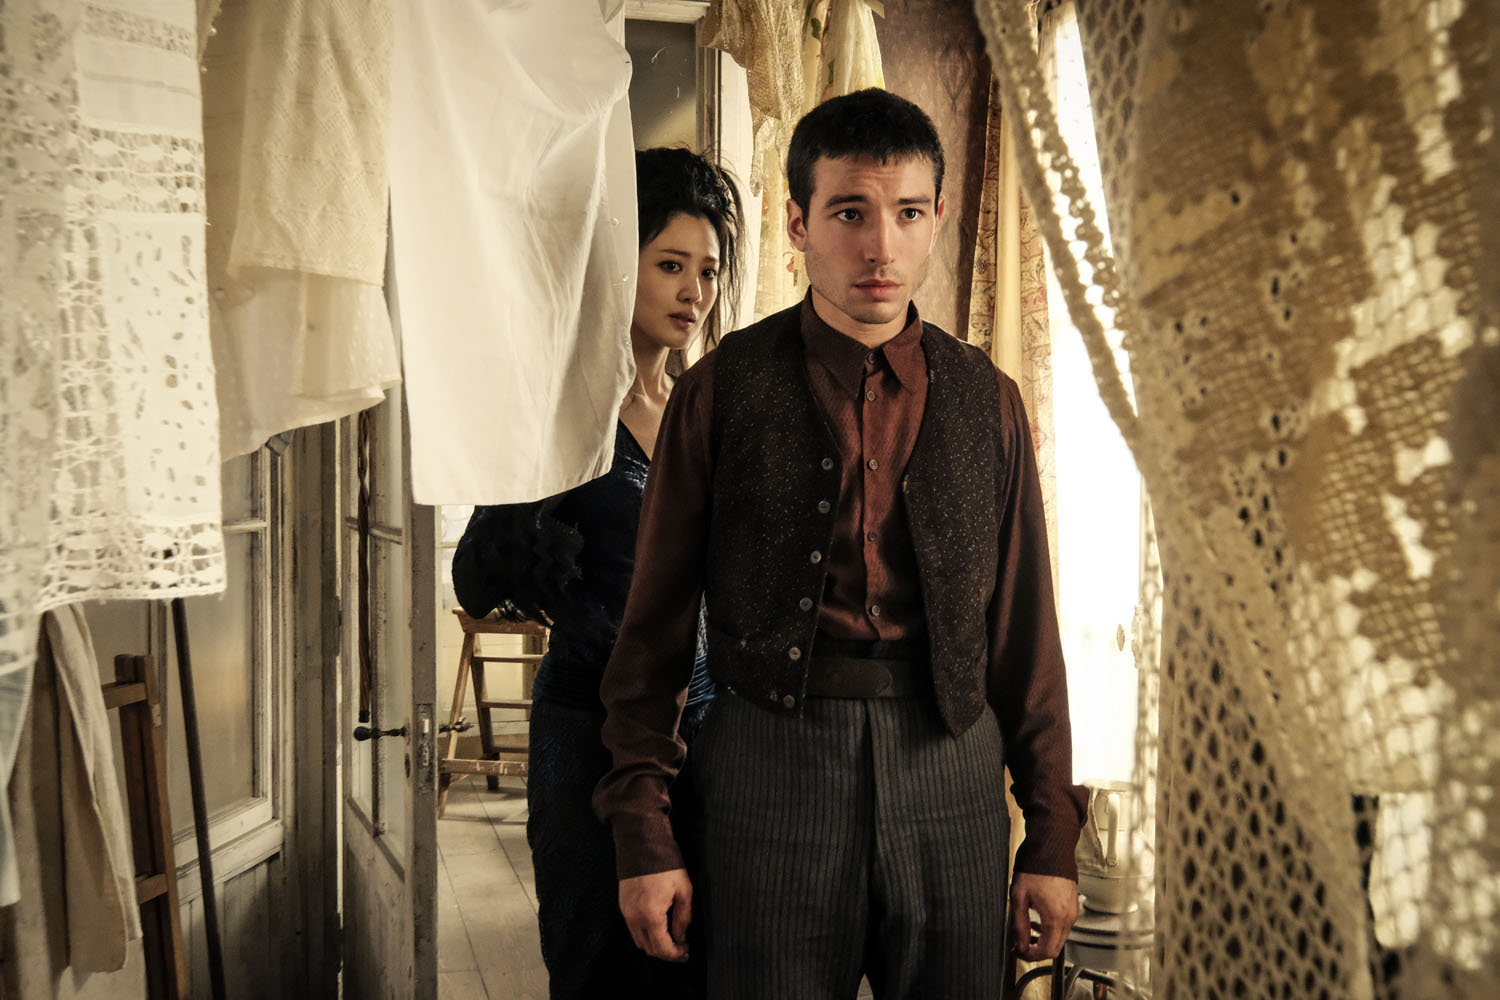 """Fantastic Beasts: The Crimes of Grindelwald"": Nagini (Claudia Kim) and Credence Barebone (Ezra Miller)"